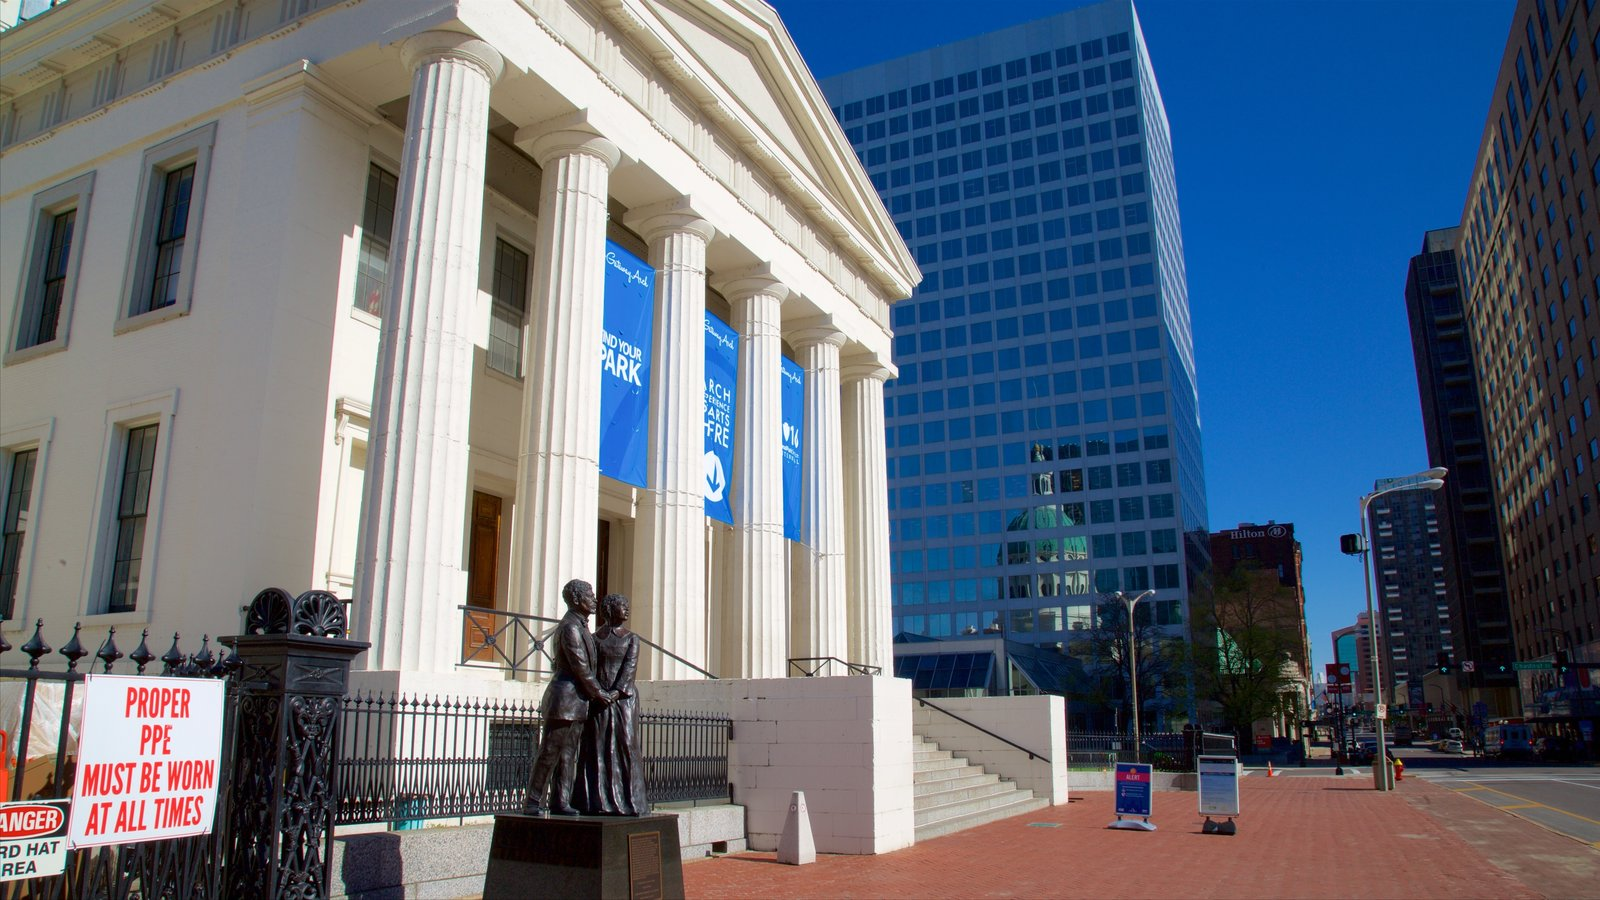 Old Courthouse featuring an administrative buidling, a statue or sculpture and heritage architecture